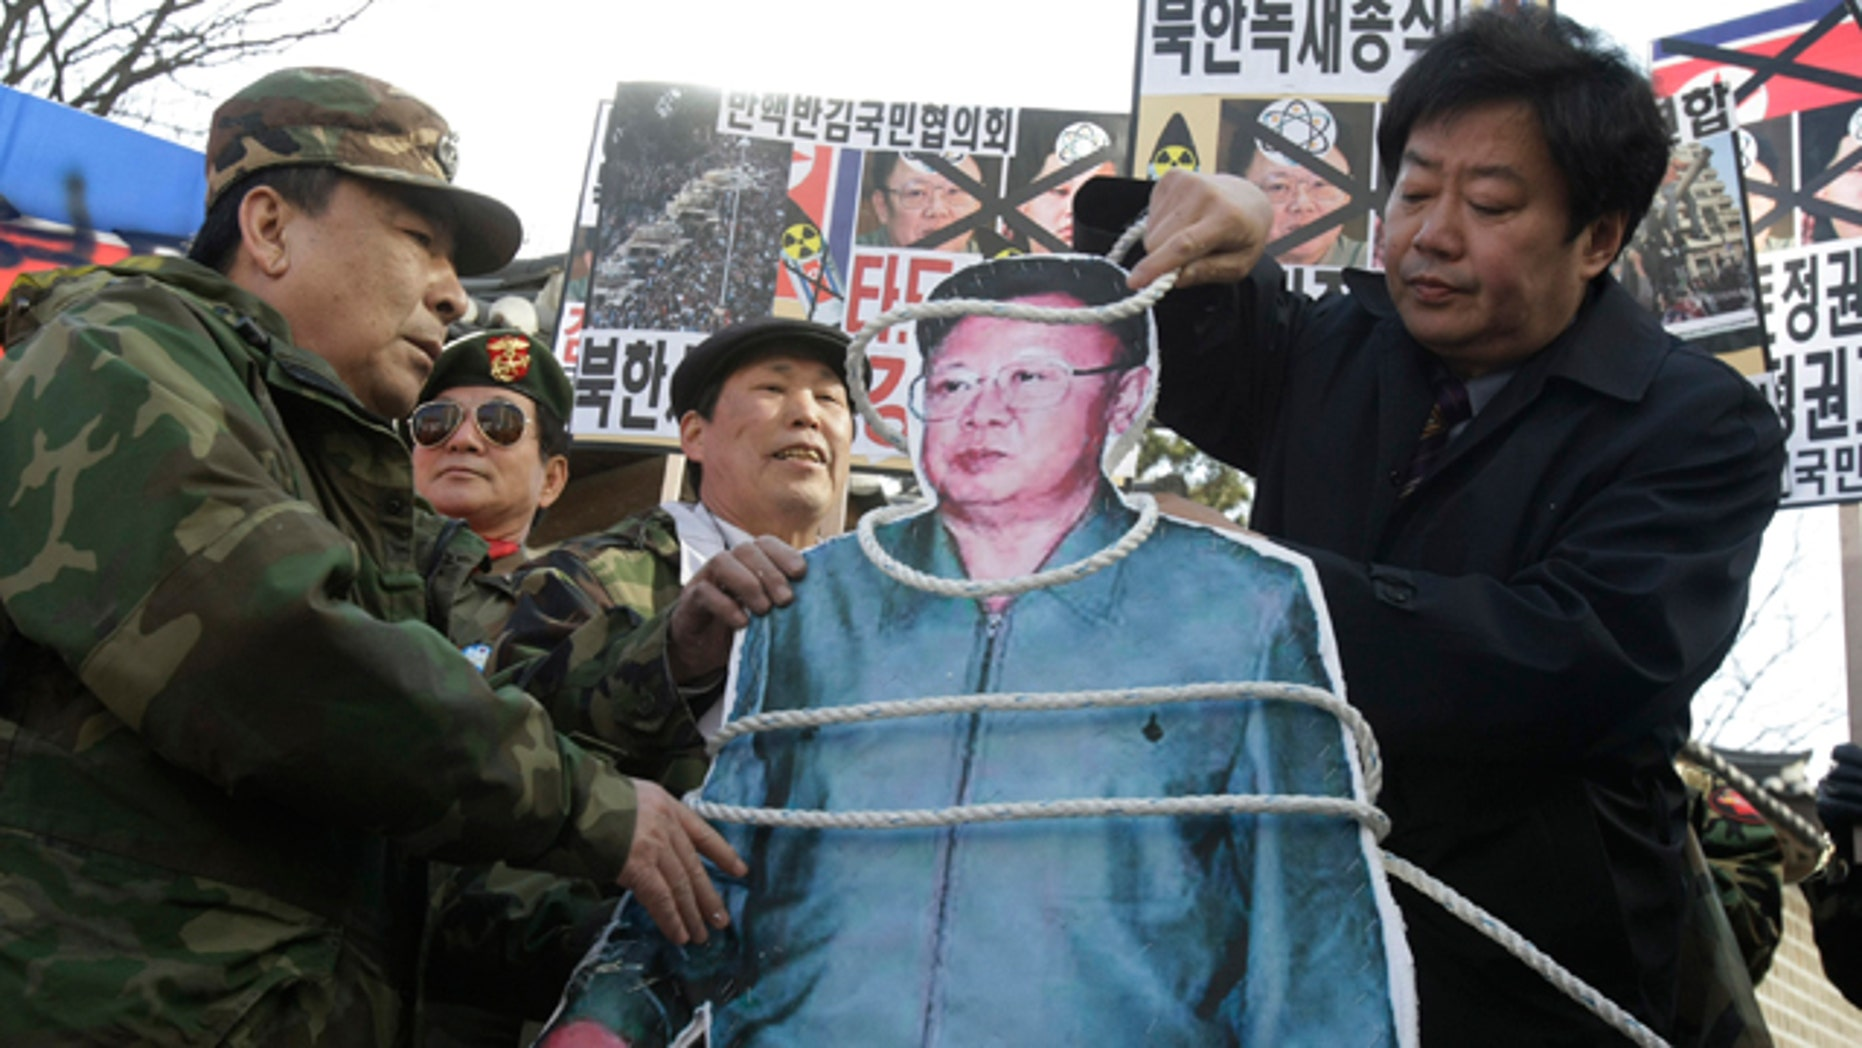 Feb. 25: A South Korean conservative coils a rope around an image of North Korean leader Kim Jong Il  during a rally against Kim's rule and to show support for the uprising in the Middle East countries, in Seoul, South Korea.